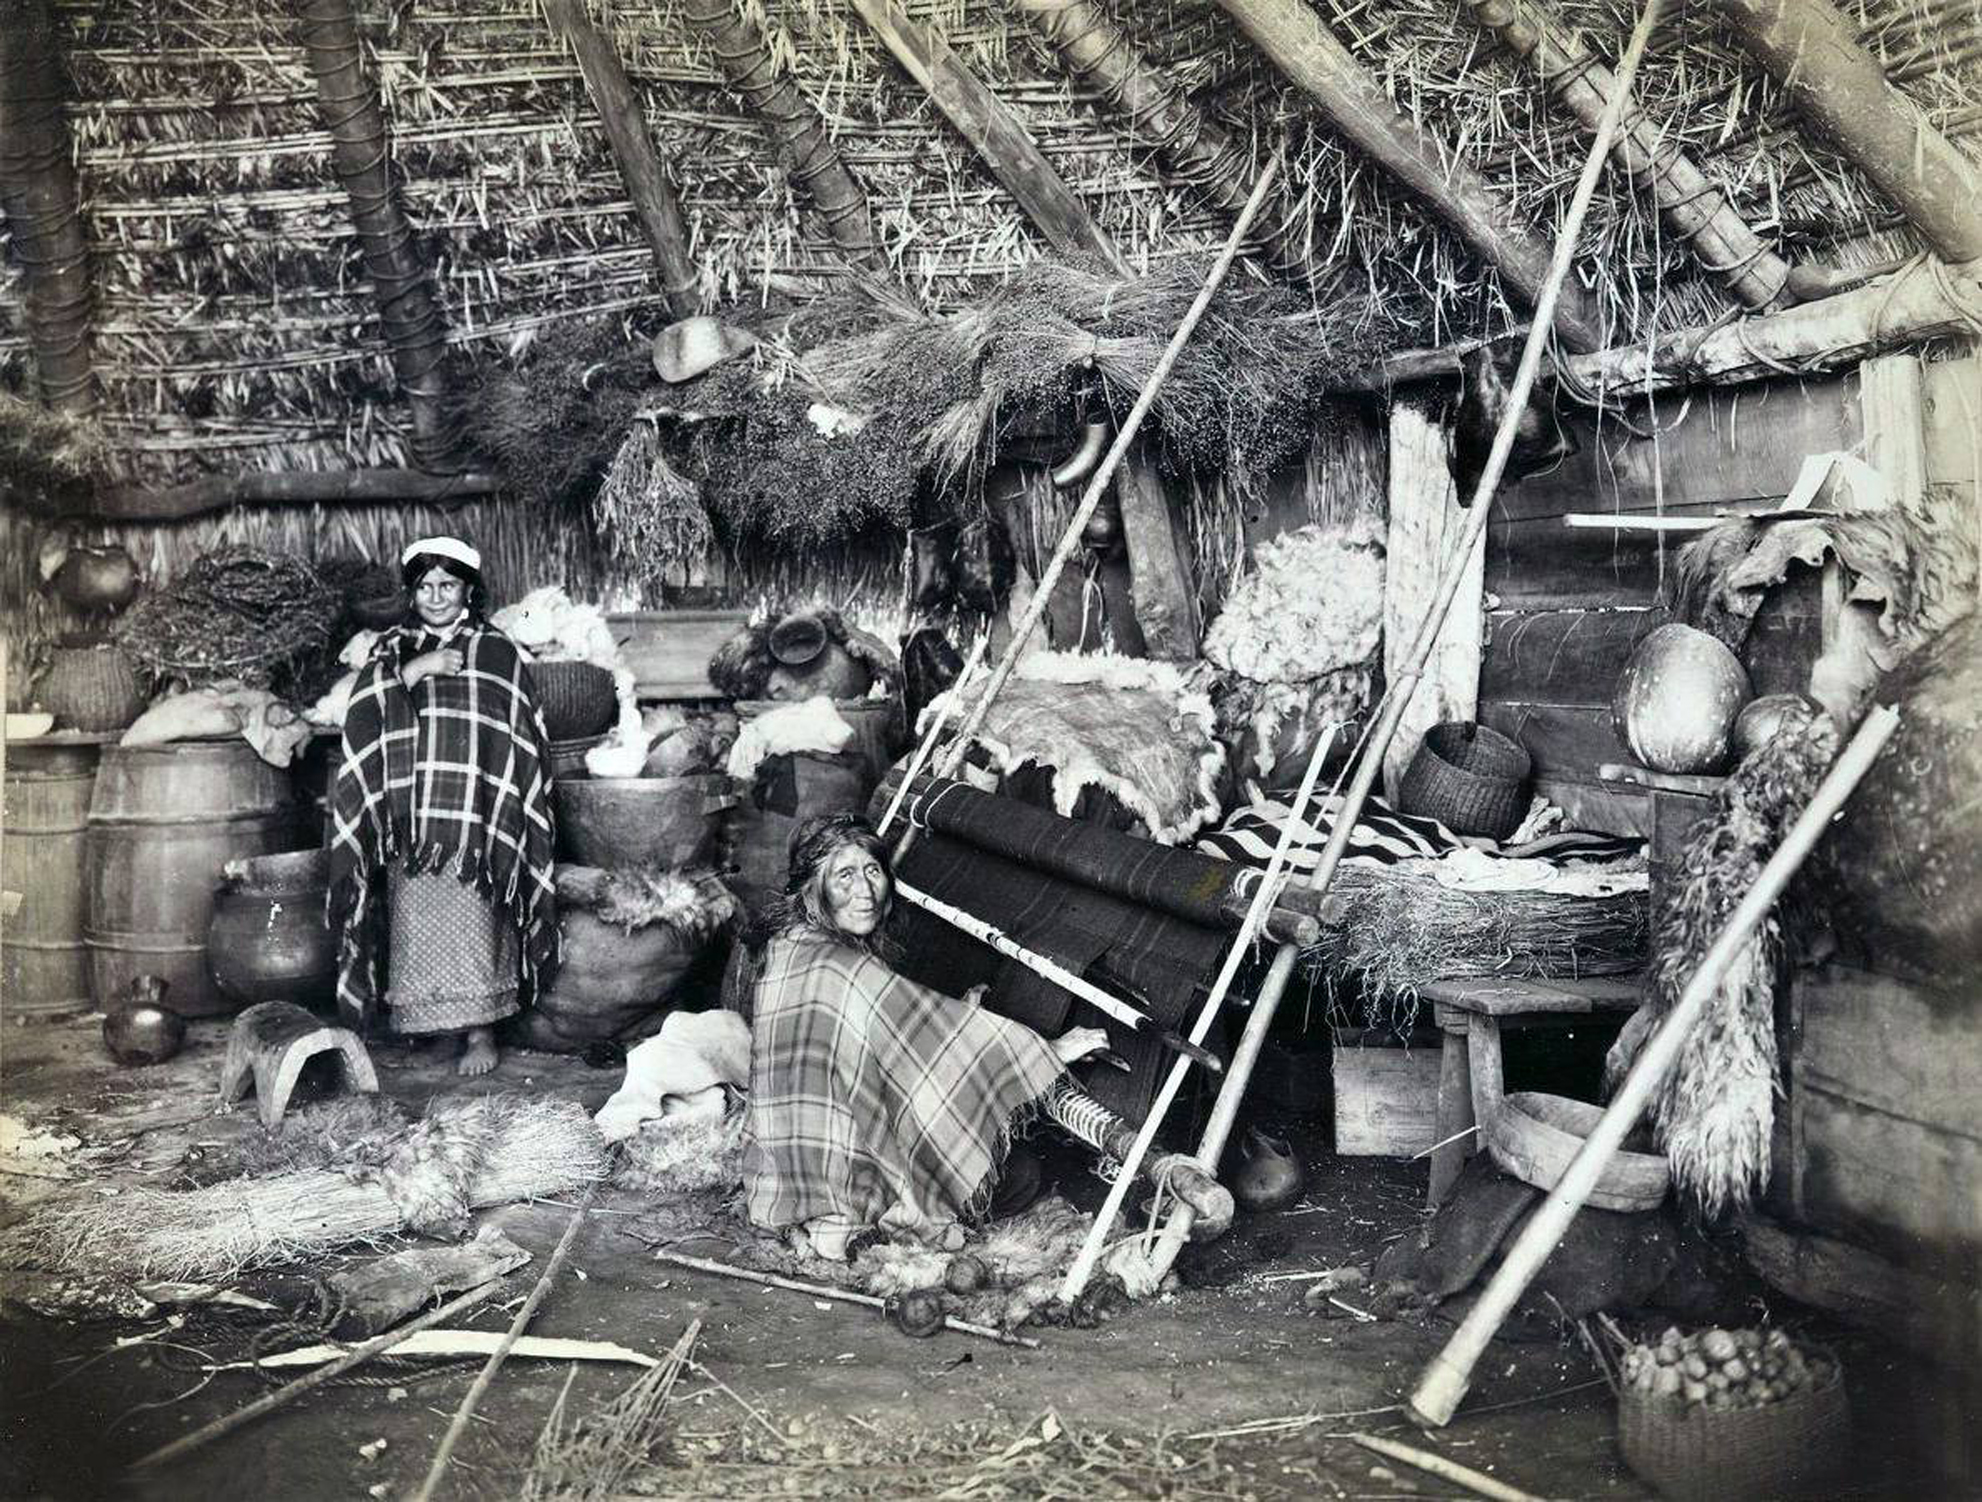 Enterreno - Fotos históricas de chile - fotos antiguas de Chile - Interior de ruca mapuche, 1895